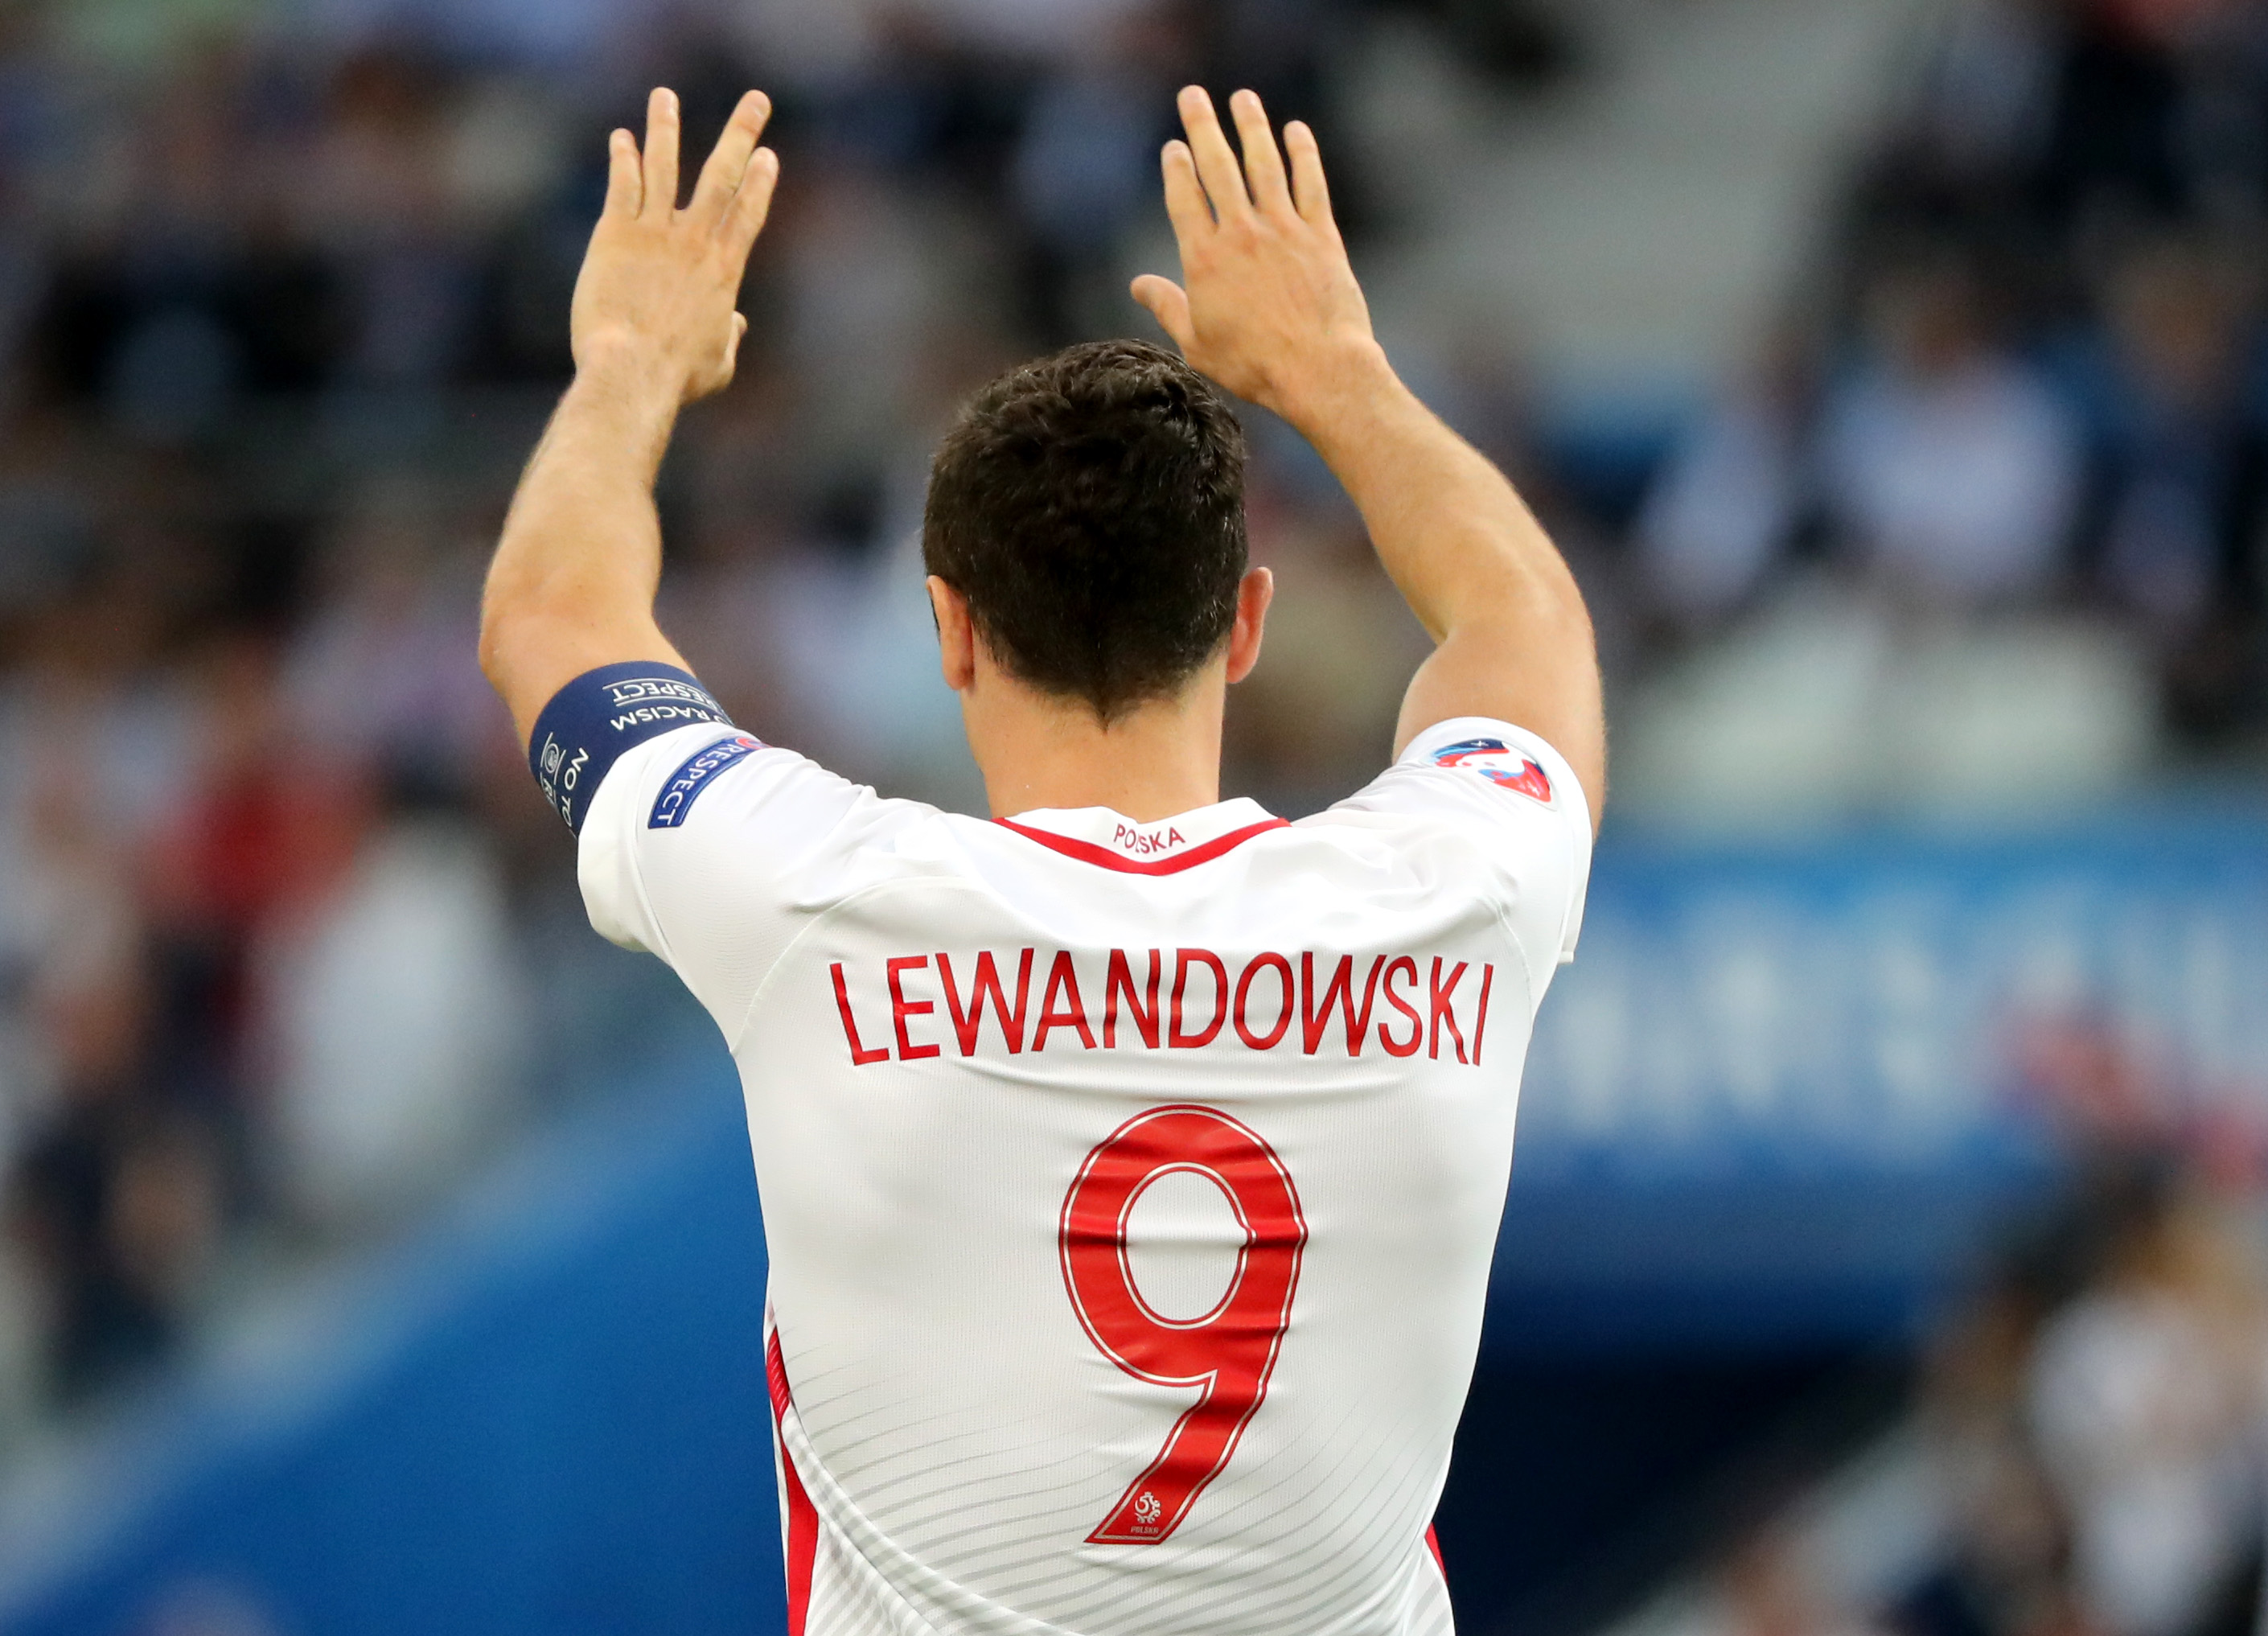 epa05399721 Robert Lewandowski of Poland celebrates after scoring the 1-0 goal during the UEFA EURO 2016 quarter final match between Poland and Portugal at Stade Velodrome in Marseille, France, 30 June 2016. (RESTRICTIONS APPLY: For editorial news reporting purposes only. Not used for commercial or marketing purposes without prior written approval of UEFA. Images must appear as still images and must not emulate match action video footage. Photographs published in online publications (whether via the Internet or otherwise) shall have an interval of at least 20 seconds between the posting.) EPA/OLIVER WEIKEN EDITORIAL USE ONLY